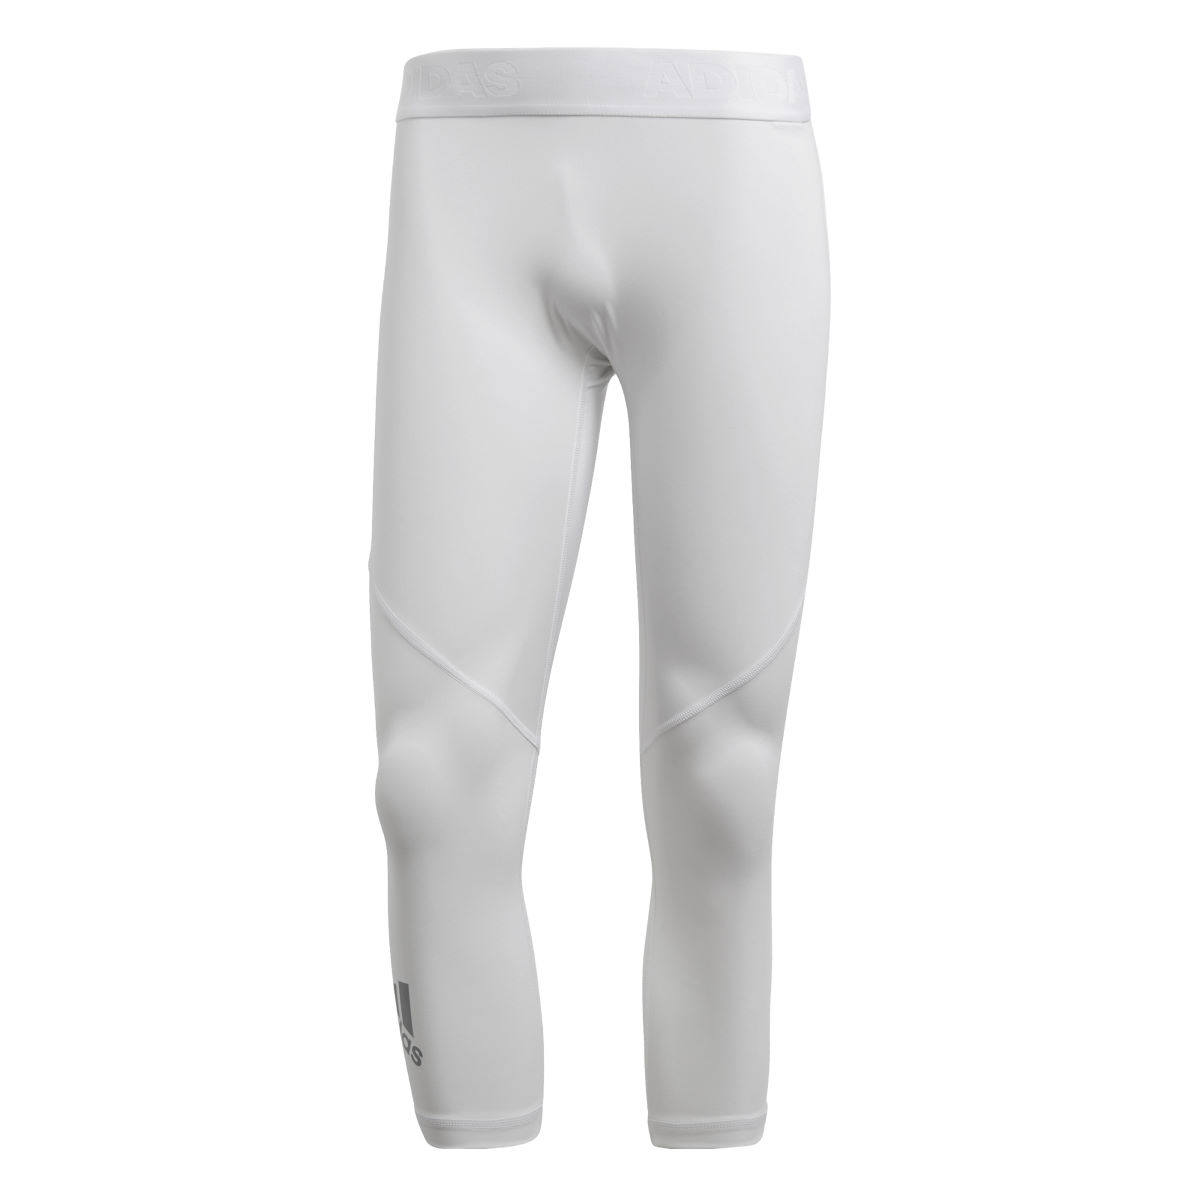 Corsaire adidas Alphaskin Sport - M WHITE Sous-vêtements compression